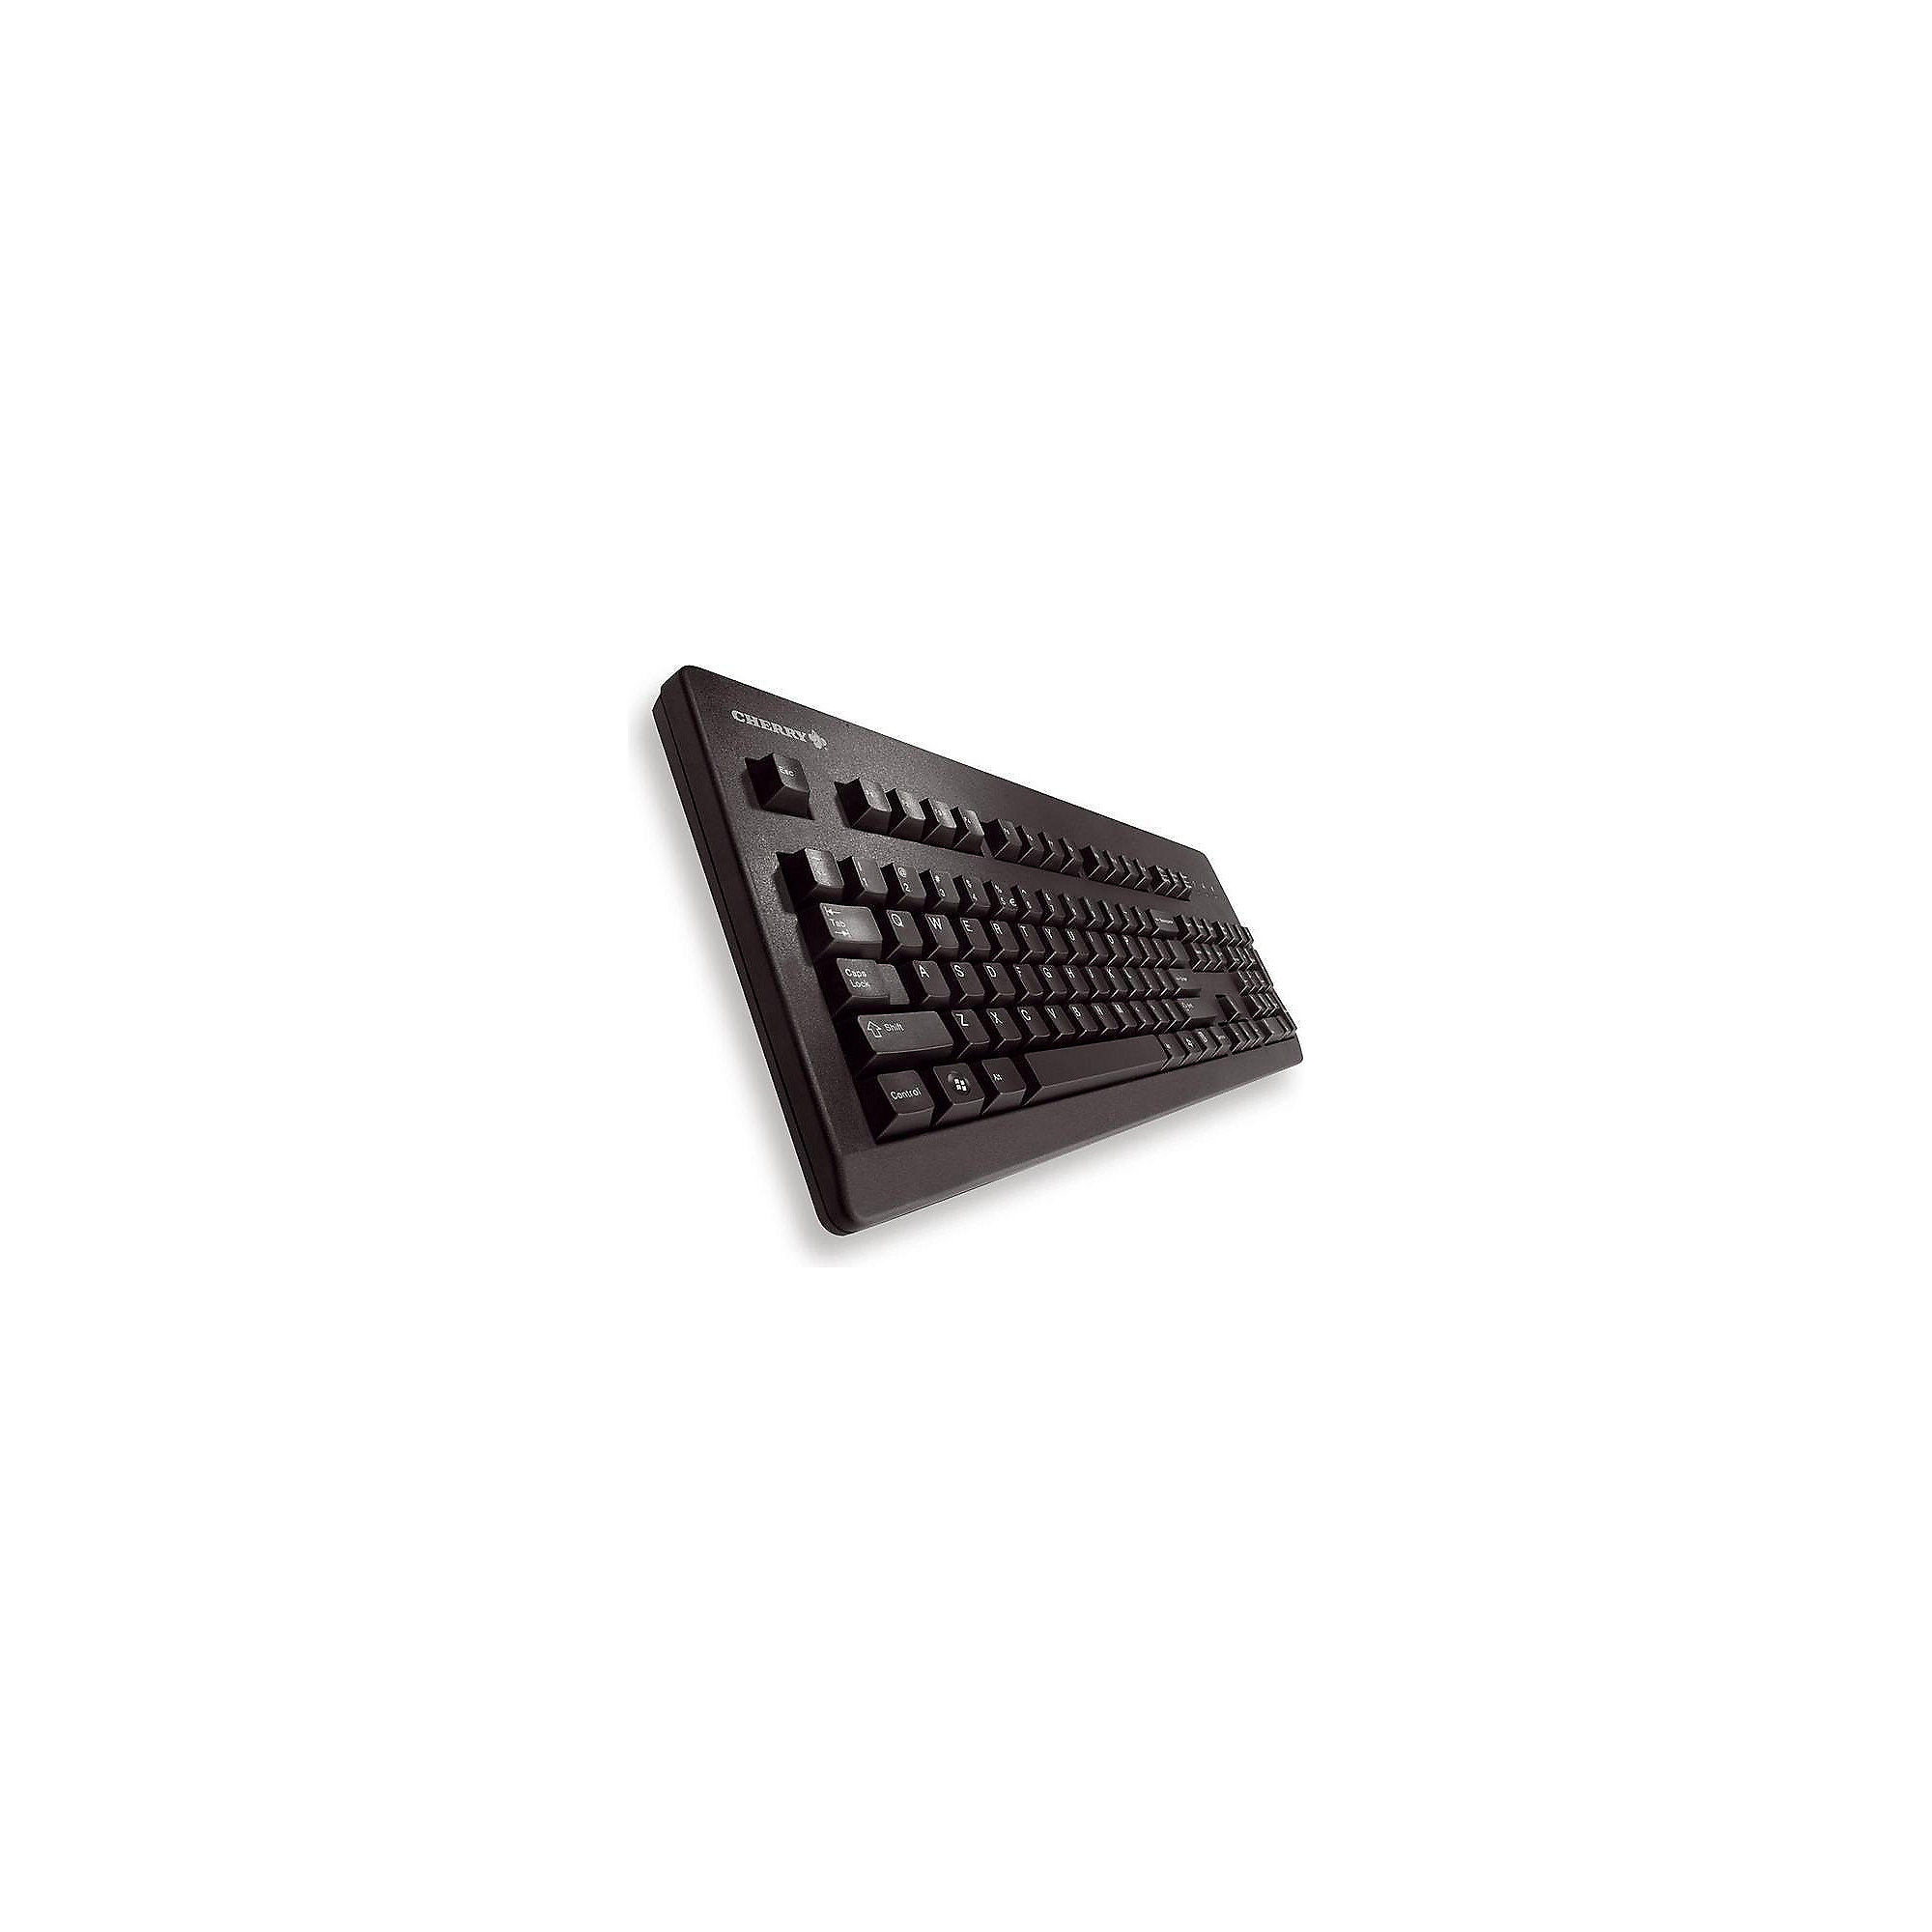 Cherry G80-3000LSCDE-2 Keyboard USB/ PS2 schwarz